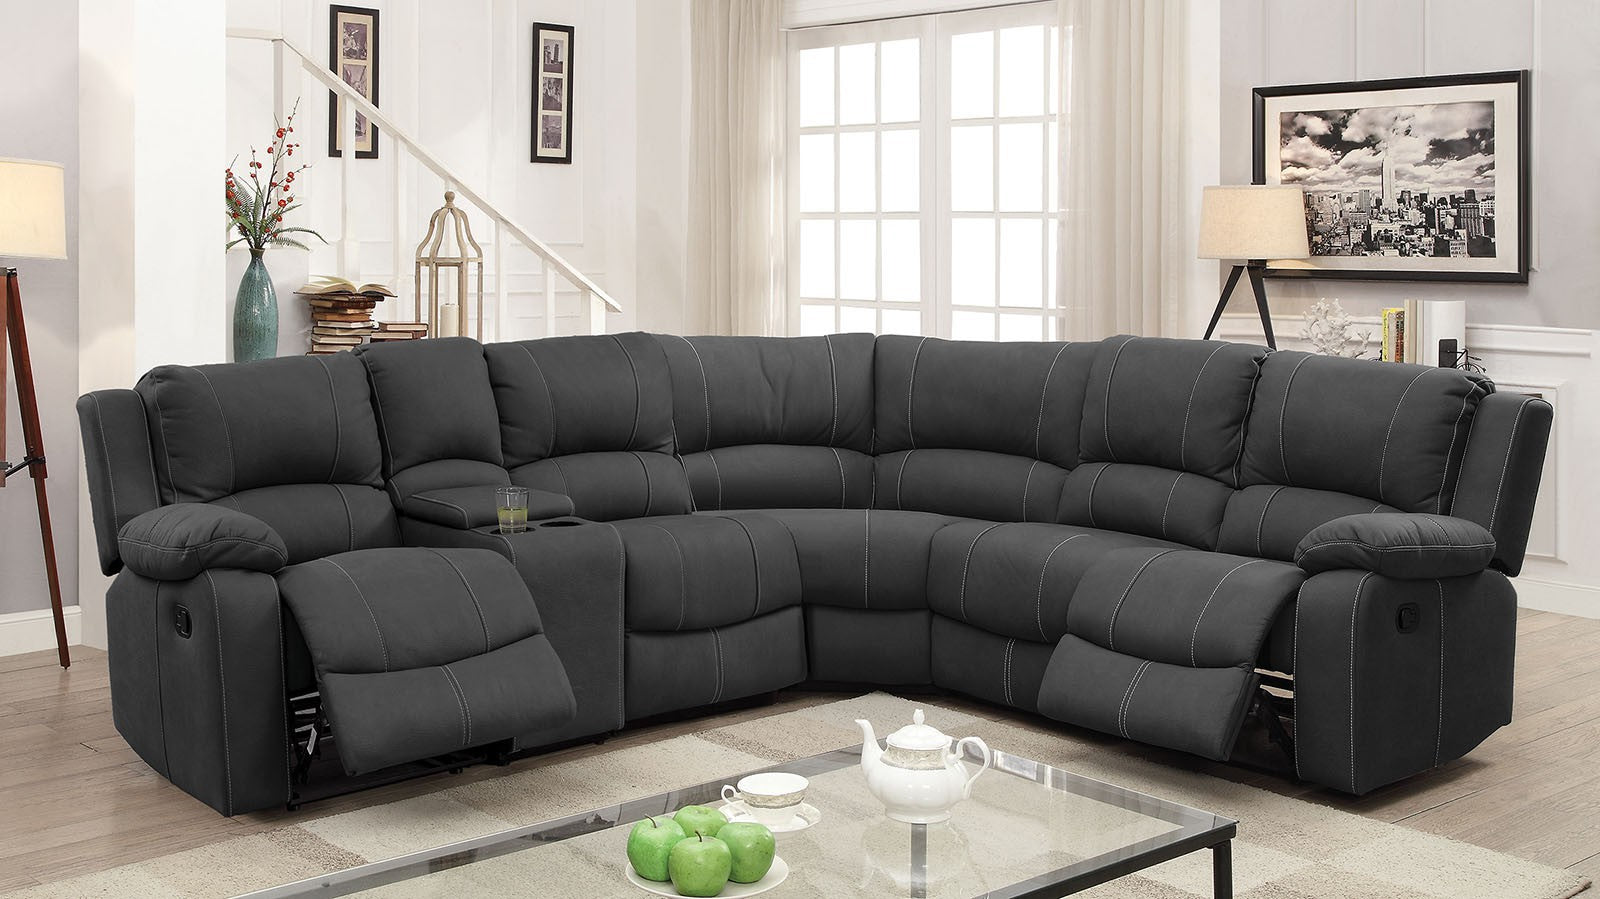 Monique Faux Nubuck Graphite Transitional 2 Recliners, 2 Drop-down Sectional